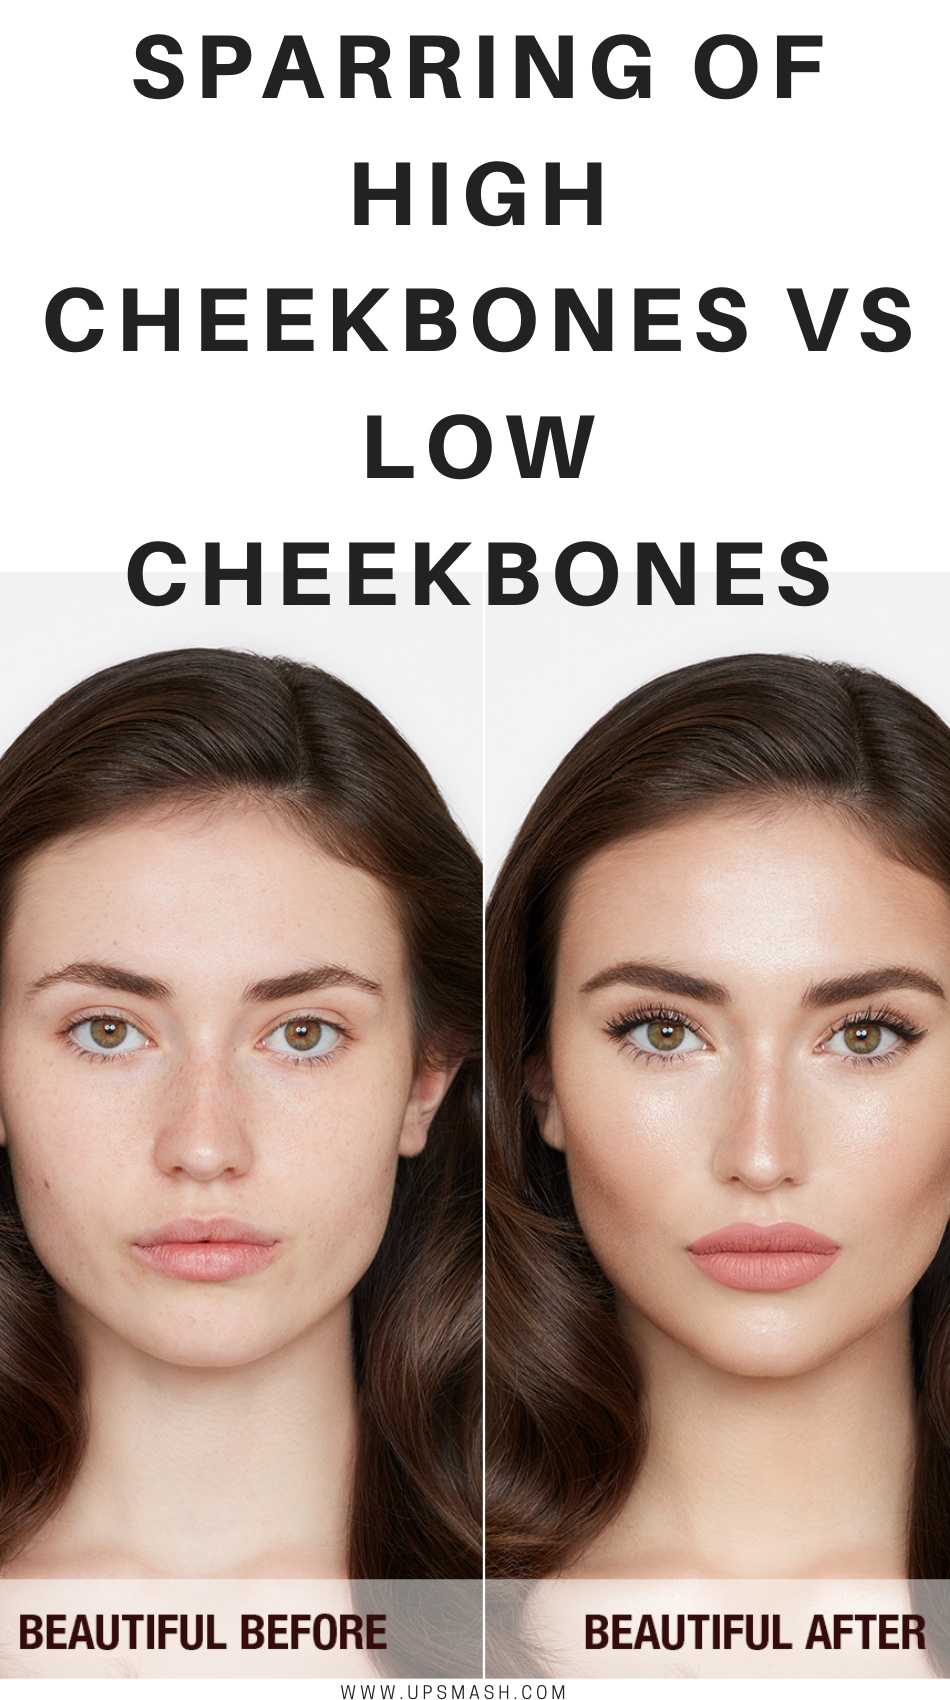 Sparring Of High Cheekbones Vs Low Cheekbones High Cheekbones Cheekbones Contour Makeup